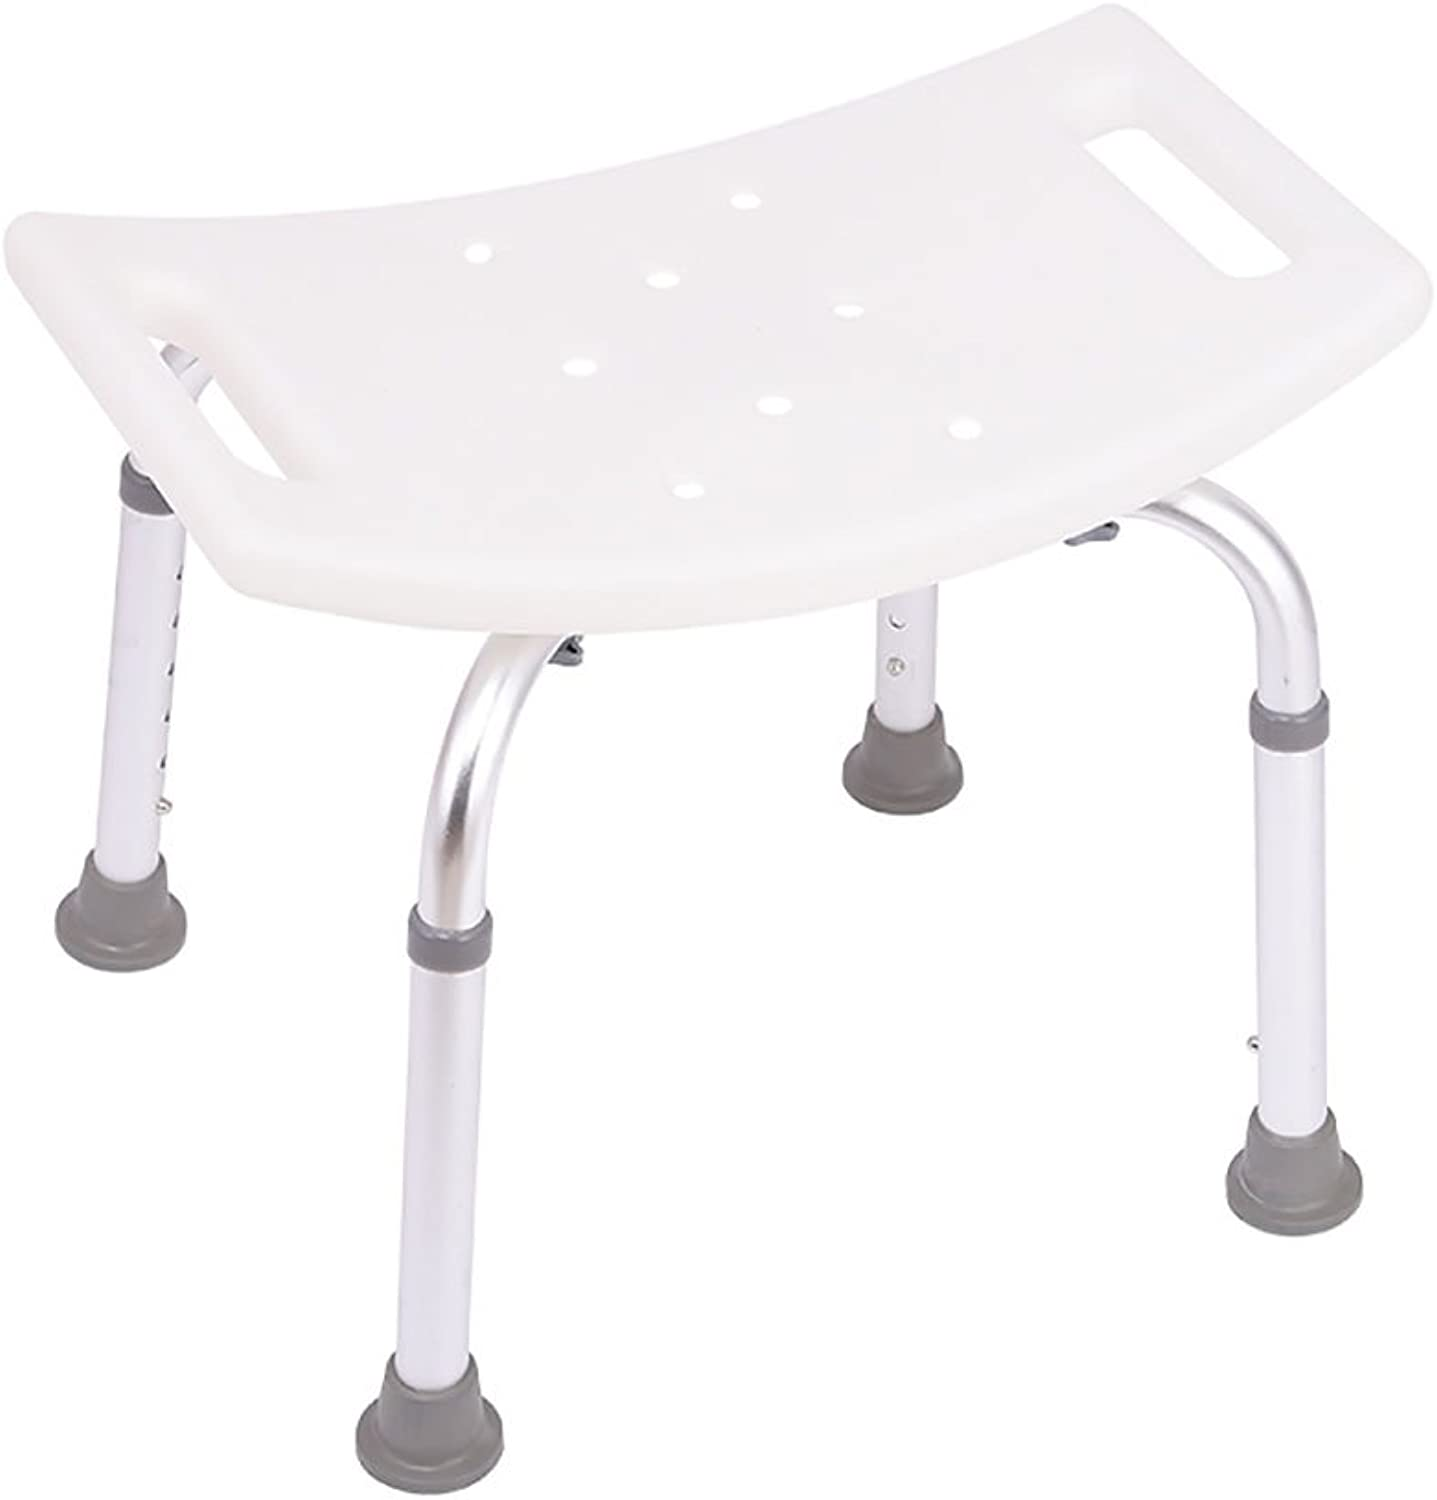 LSFF Simple and stylish Bathroom Non-slip Bathroom Bath Chair Wall-mounted Folding Stool Elderly Pregnant Women Disabled Change shoes Stool Bathing Safe Seat Chair Max